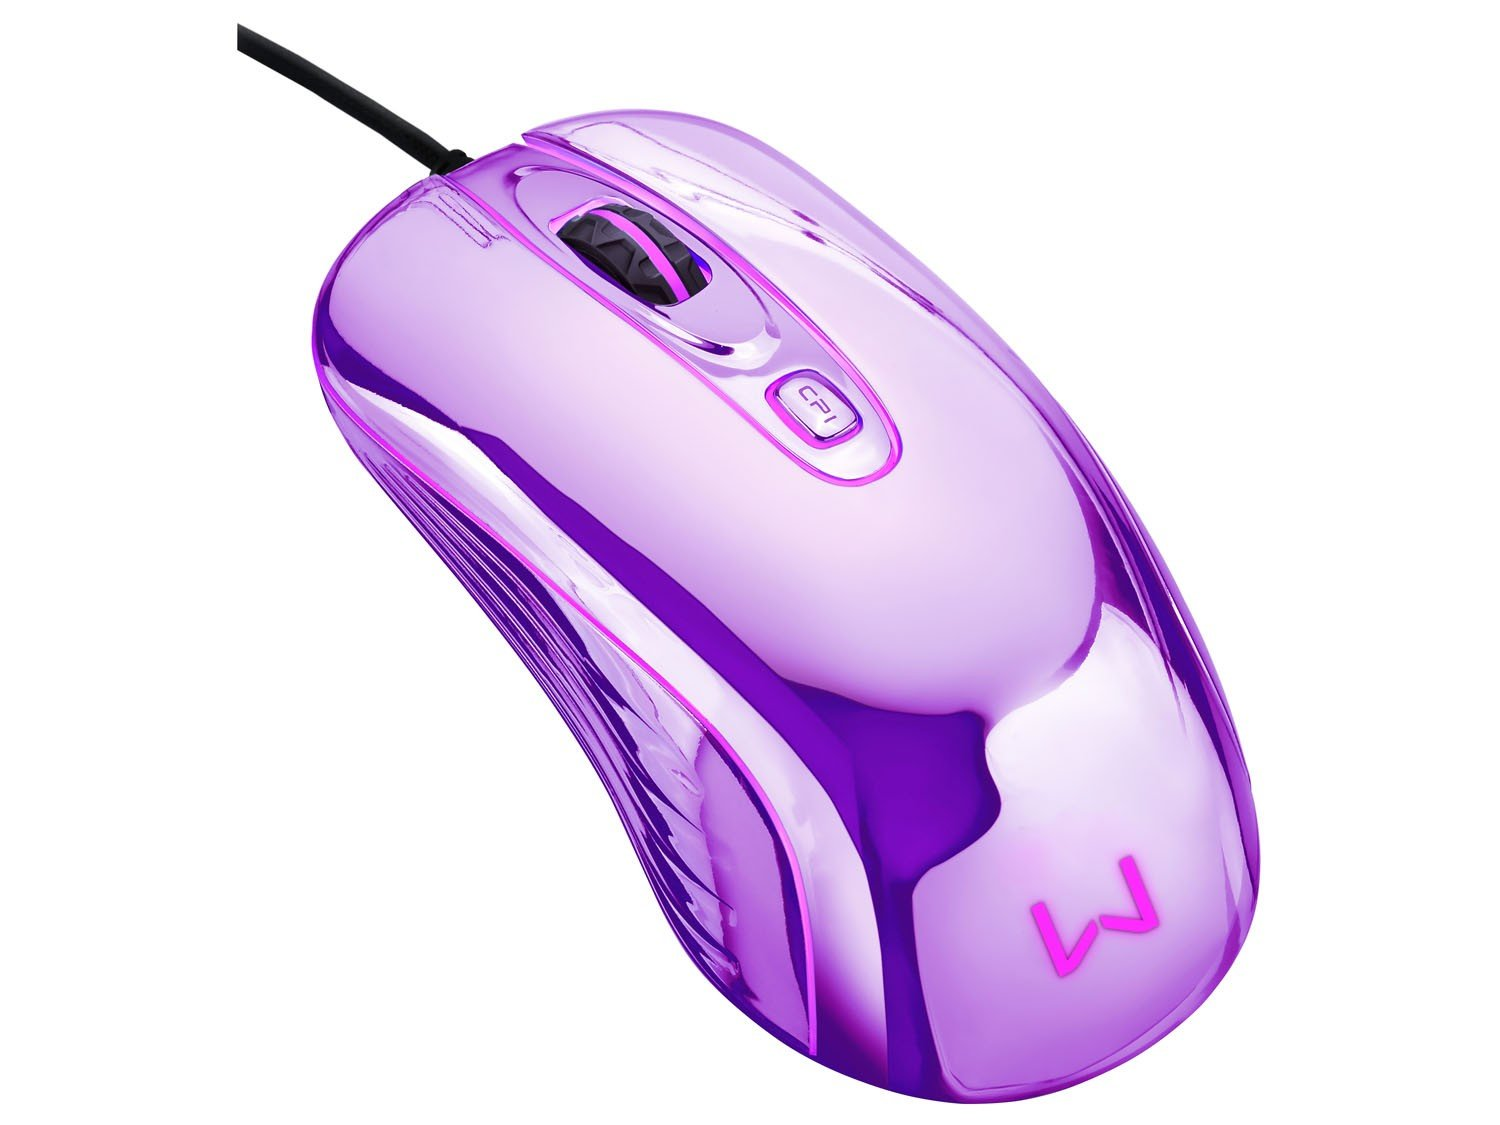 Foto 5 - Mouse Óptico 1600dpi USB - Multilaser Gamer Chrome Warrior M0228